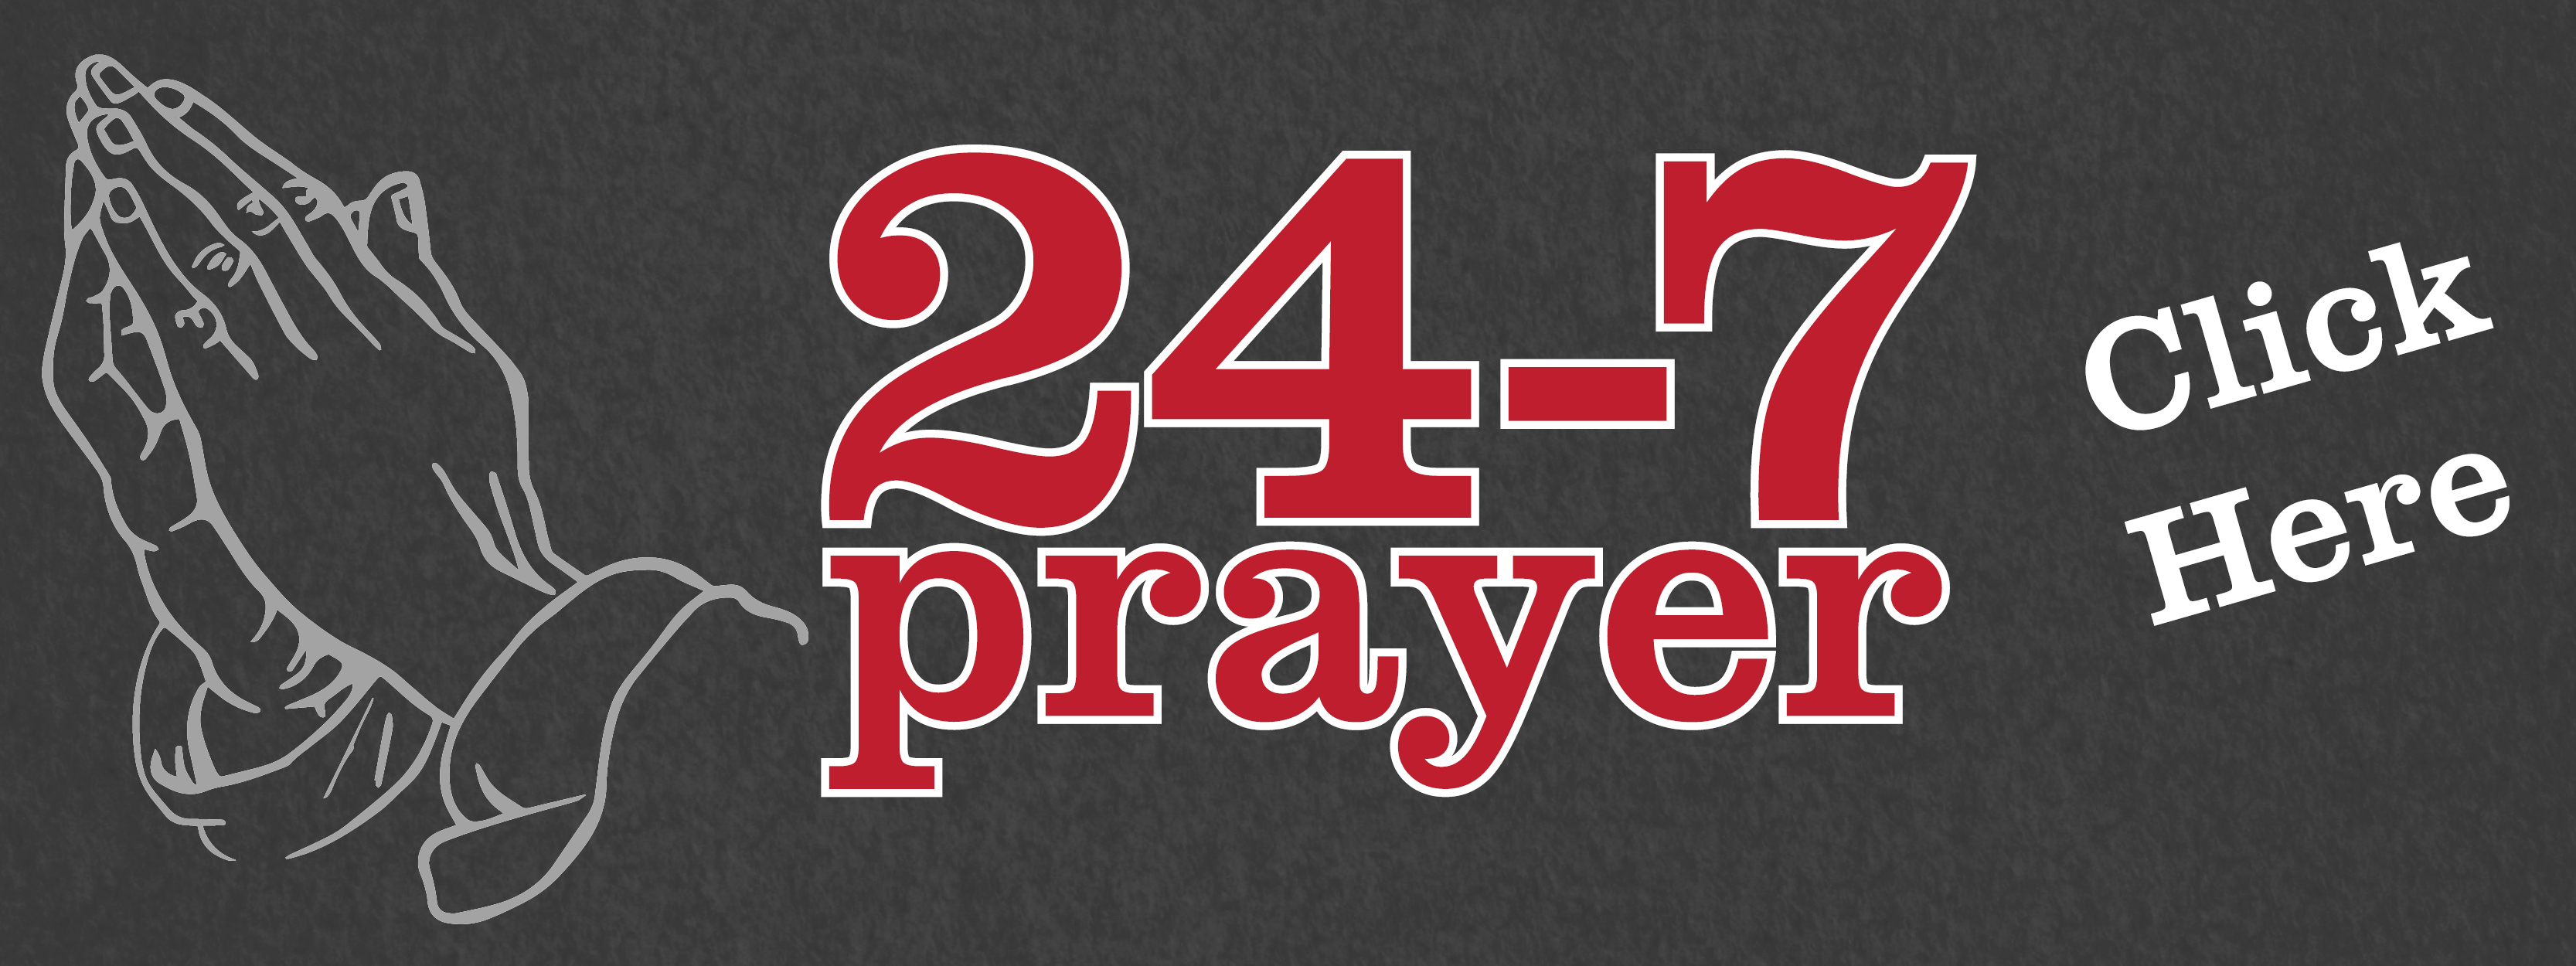 24-7 Prayer Graphic